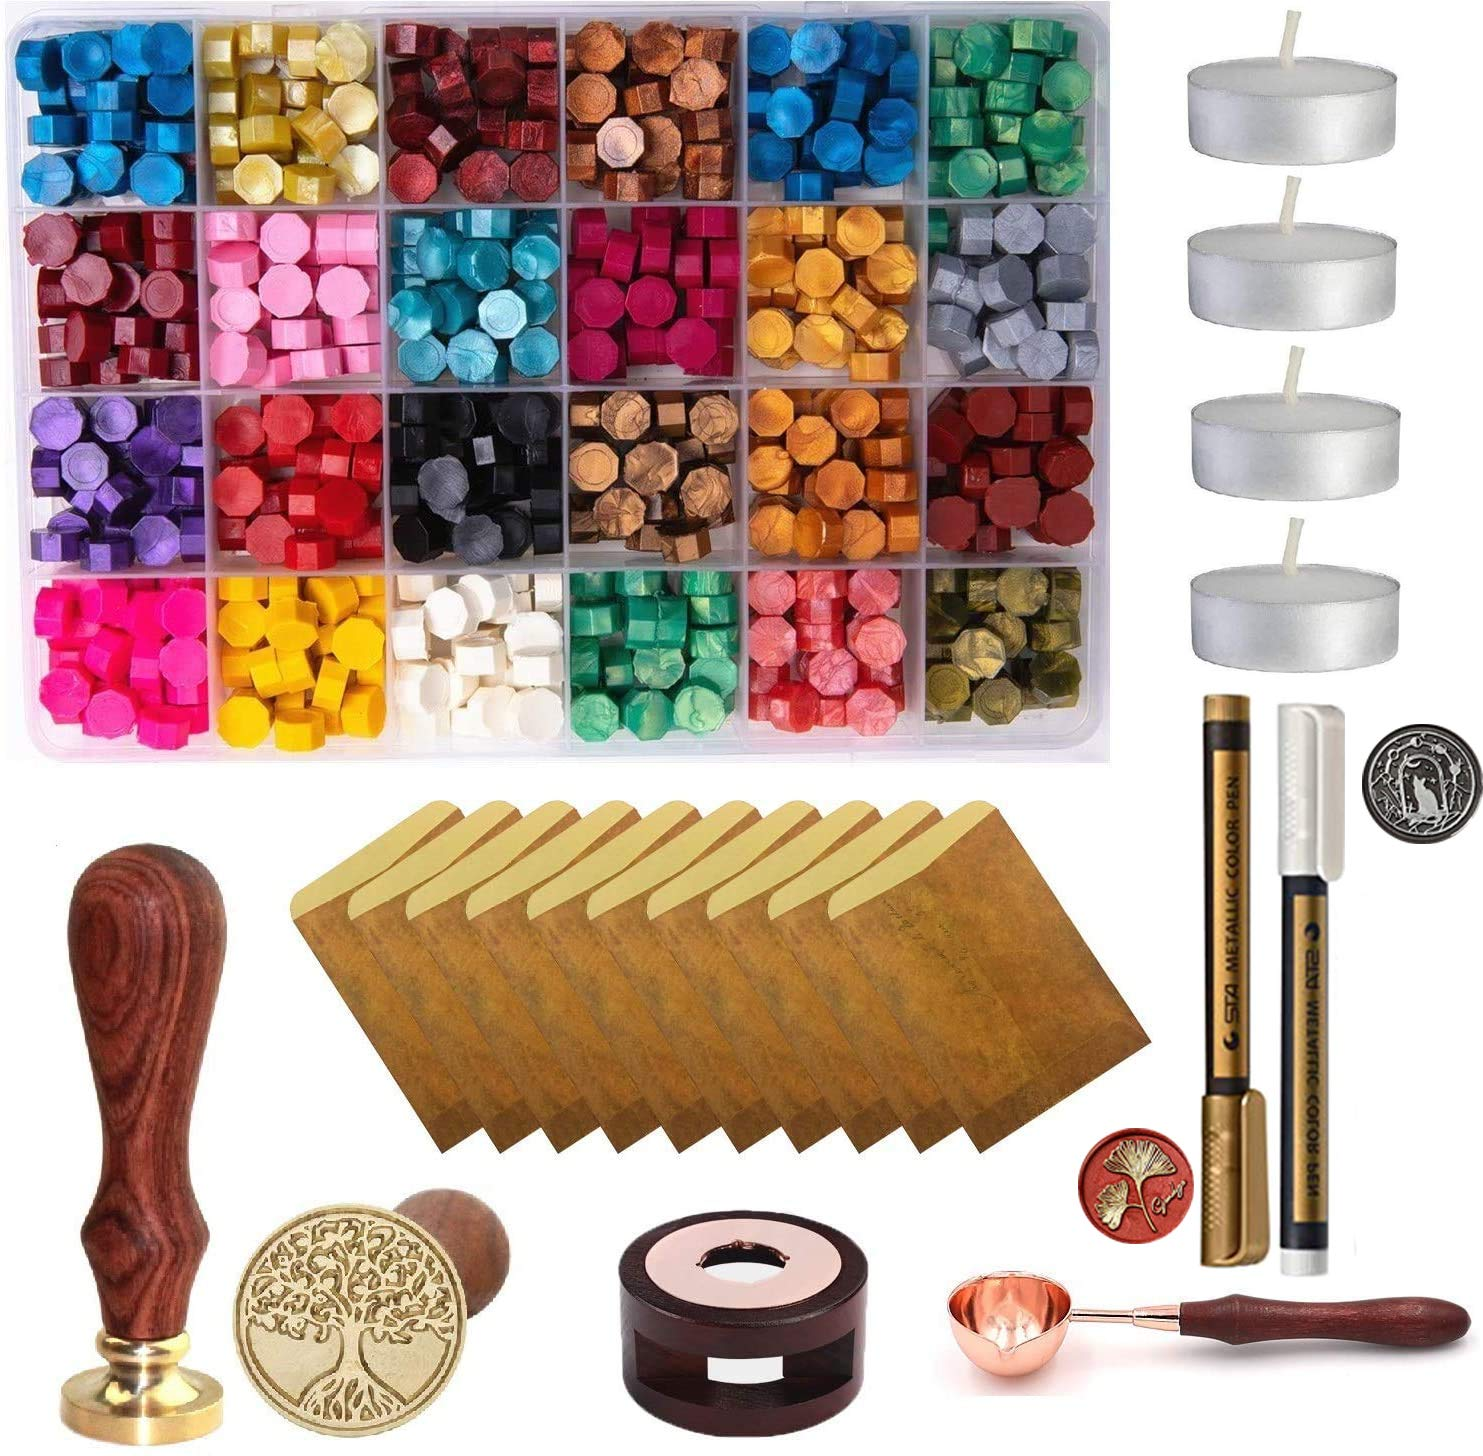 200 Pcs Octagon Wax Seal Beads with Candles and Melting Spoon for Wax Seal Stamp Teal Blue Sealing Wax Beads